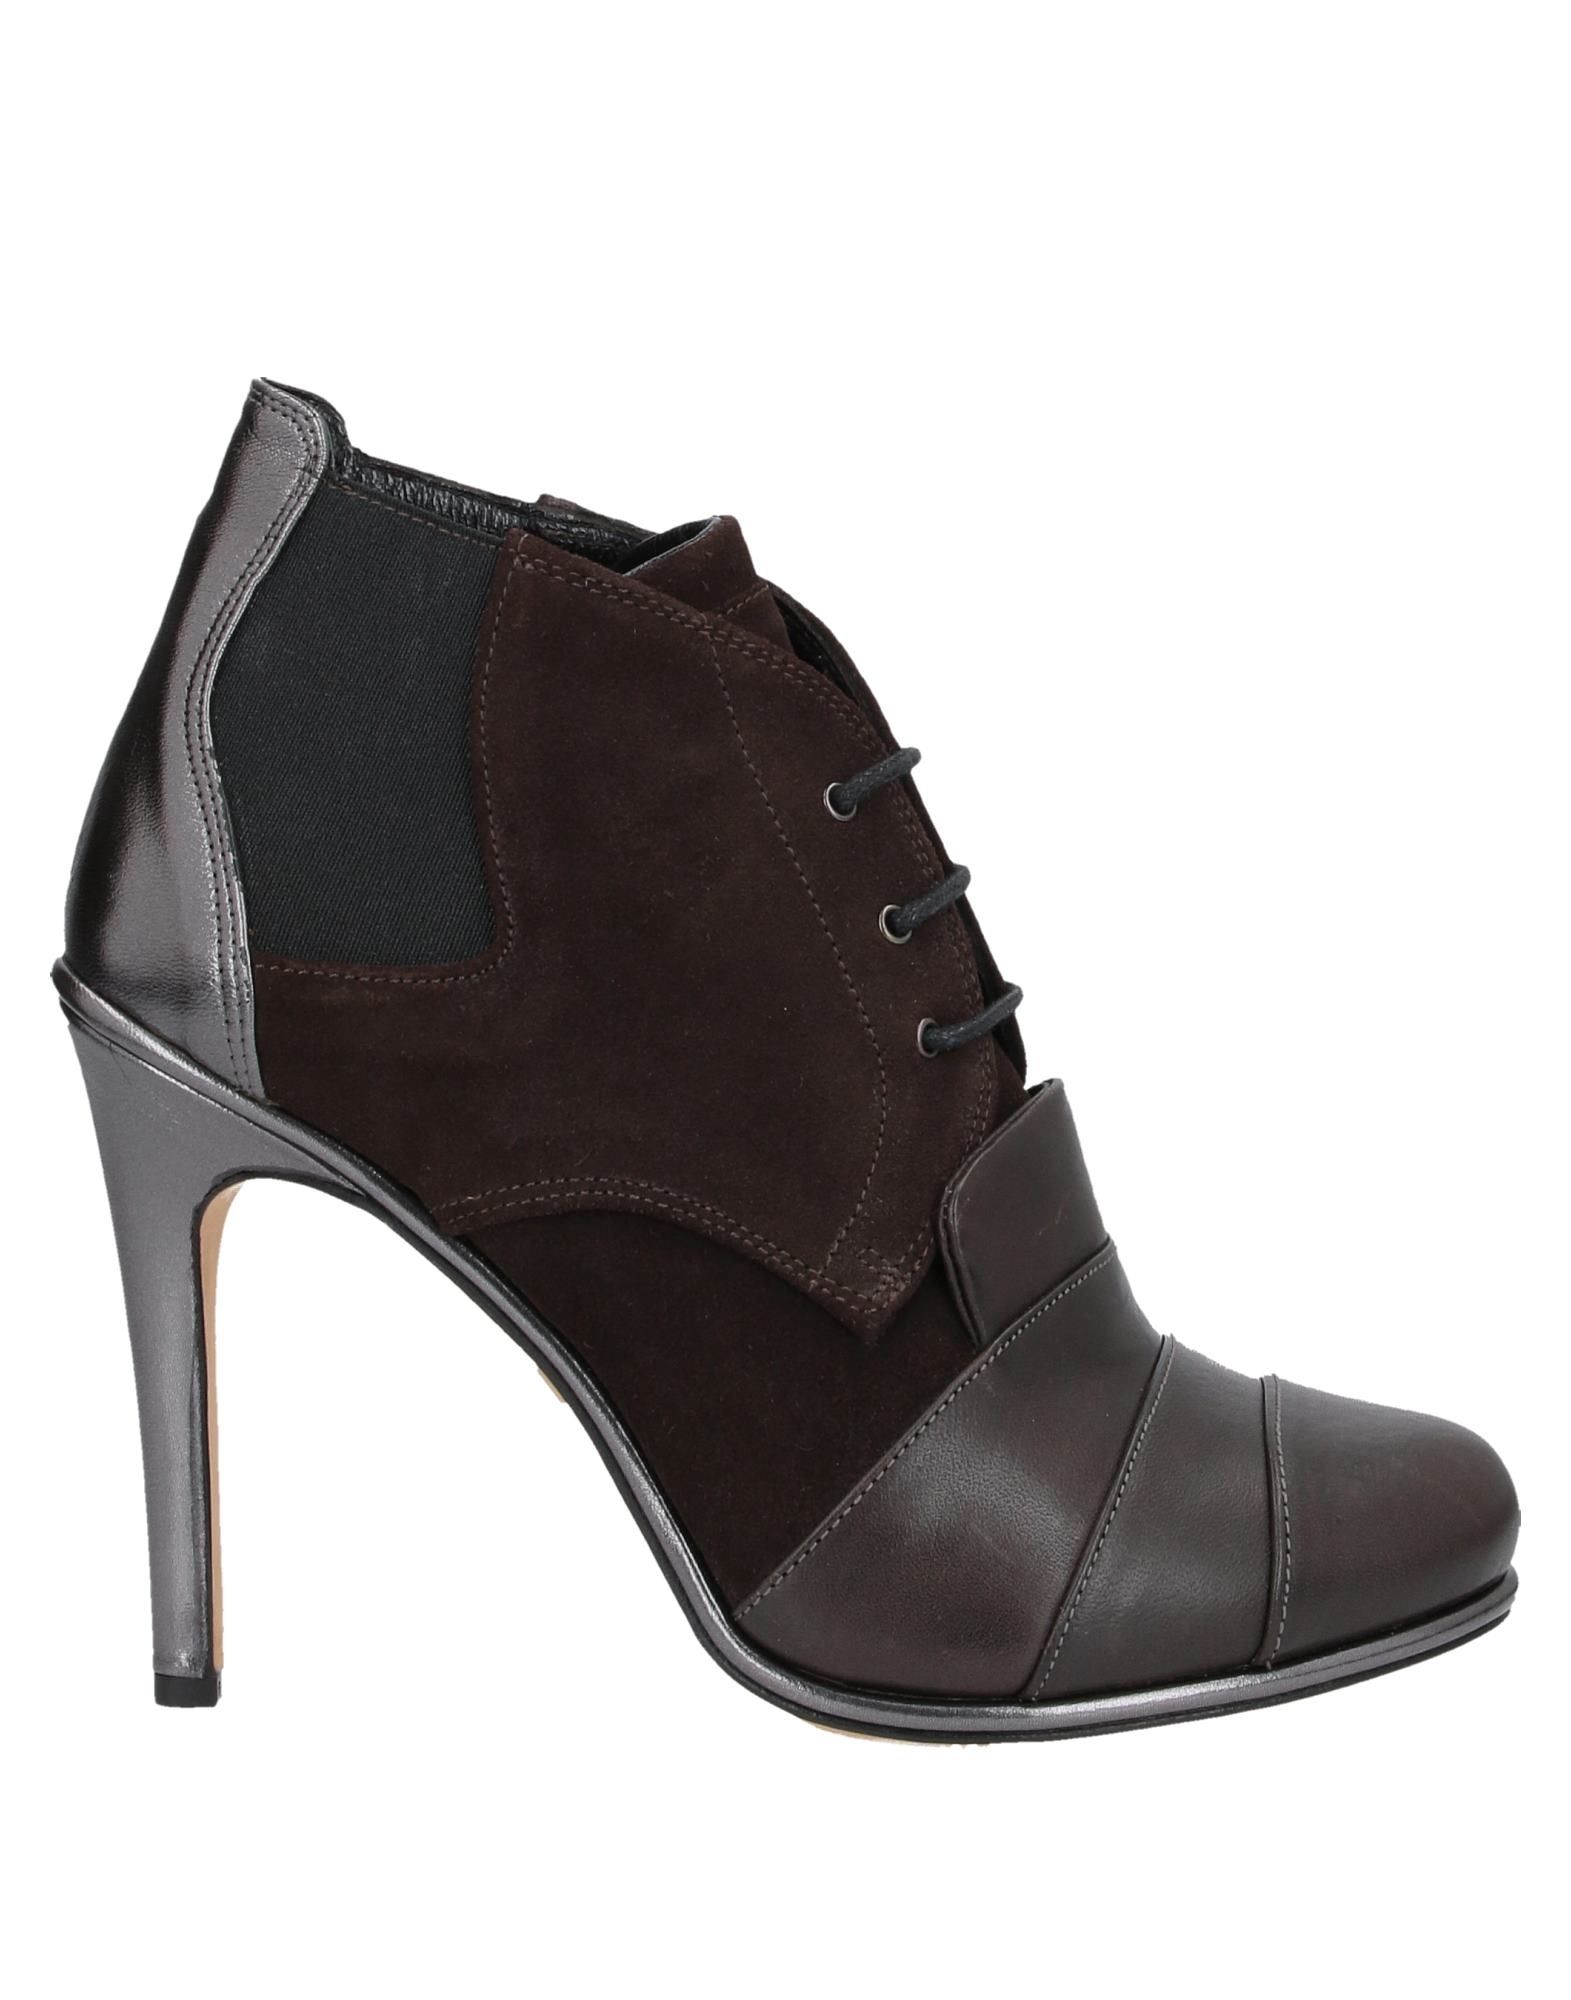 NEIL BARRETT Ankle boots. suede effect, no appliqués, solid color, laces, round toeline, stiletto heel, leather lining, leather sole, contains non-textile parts of animal origin. Soft Leather